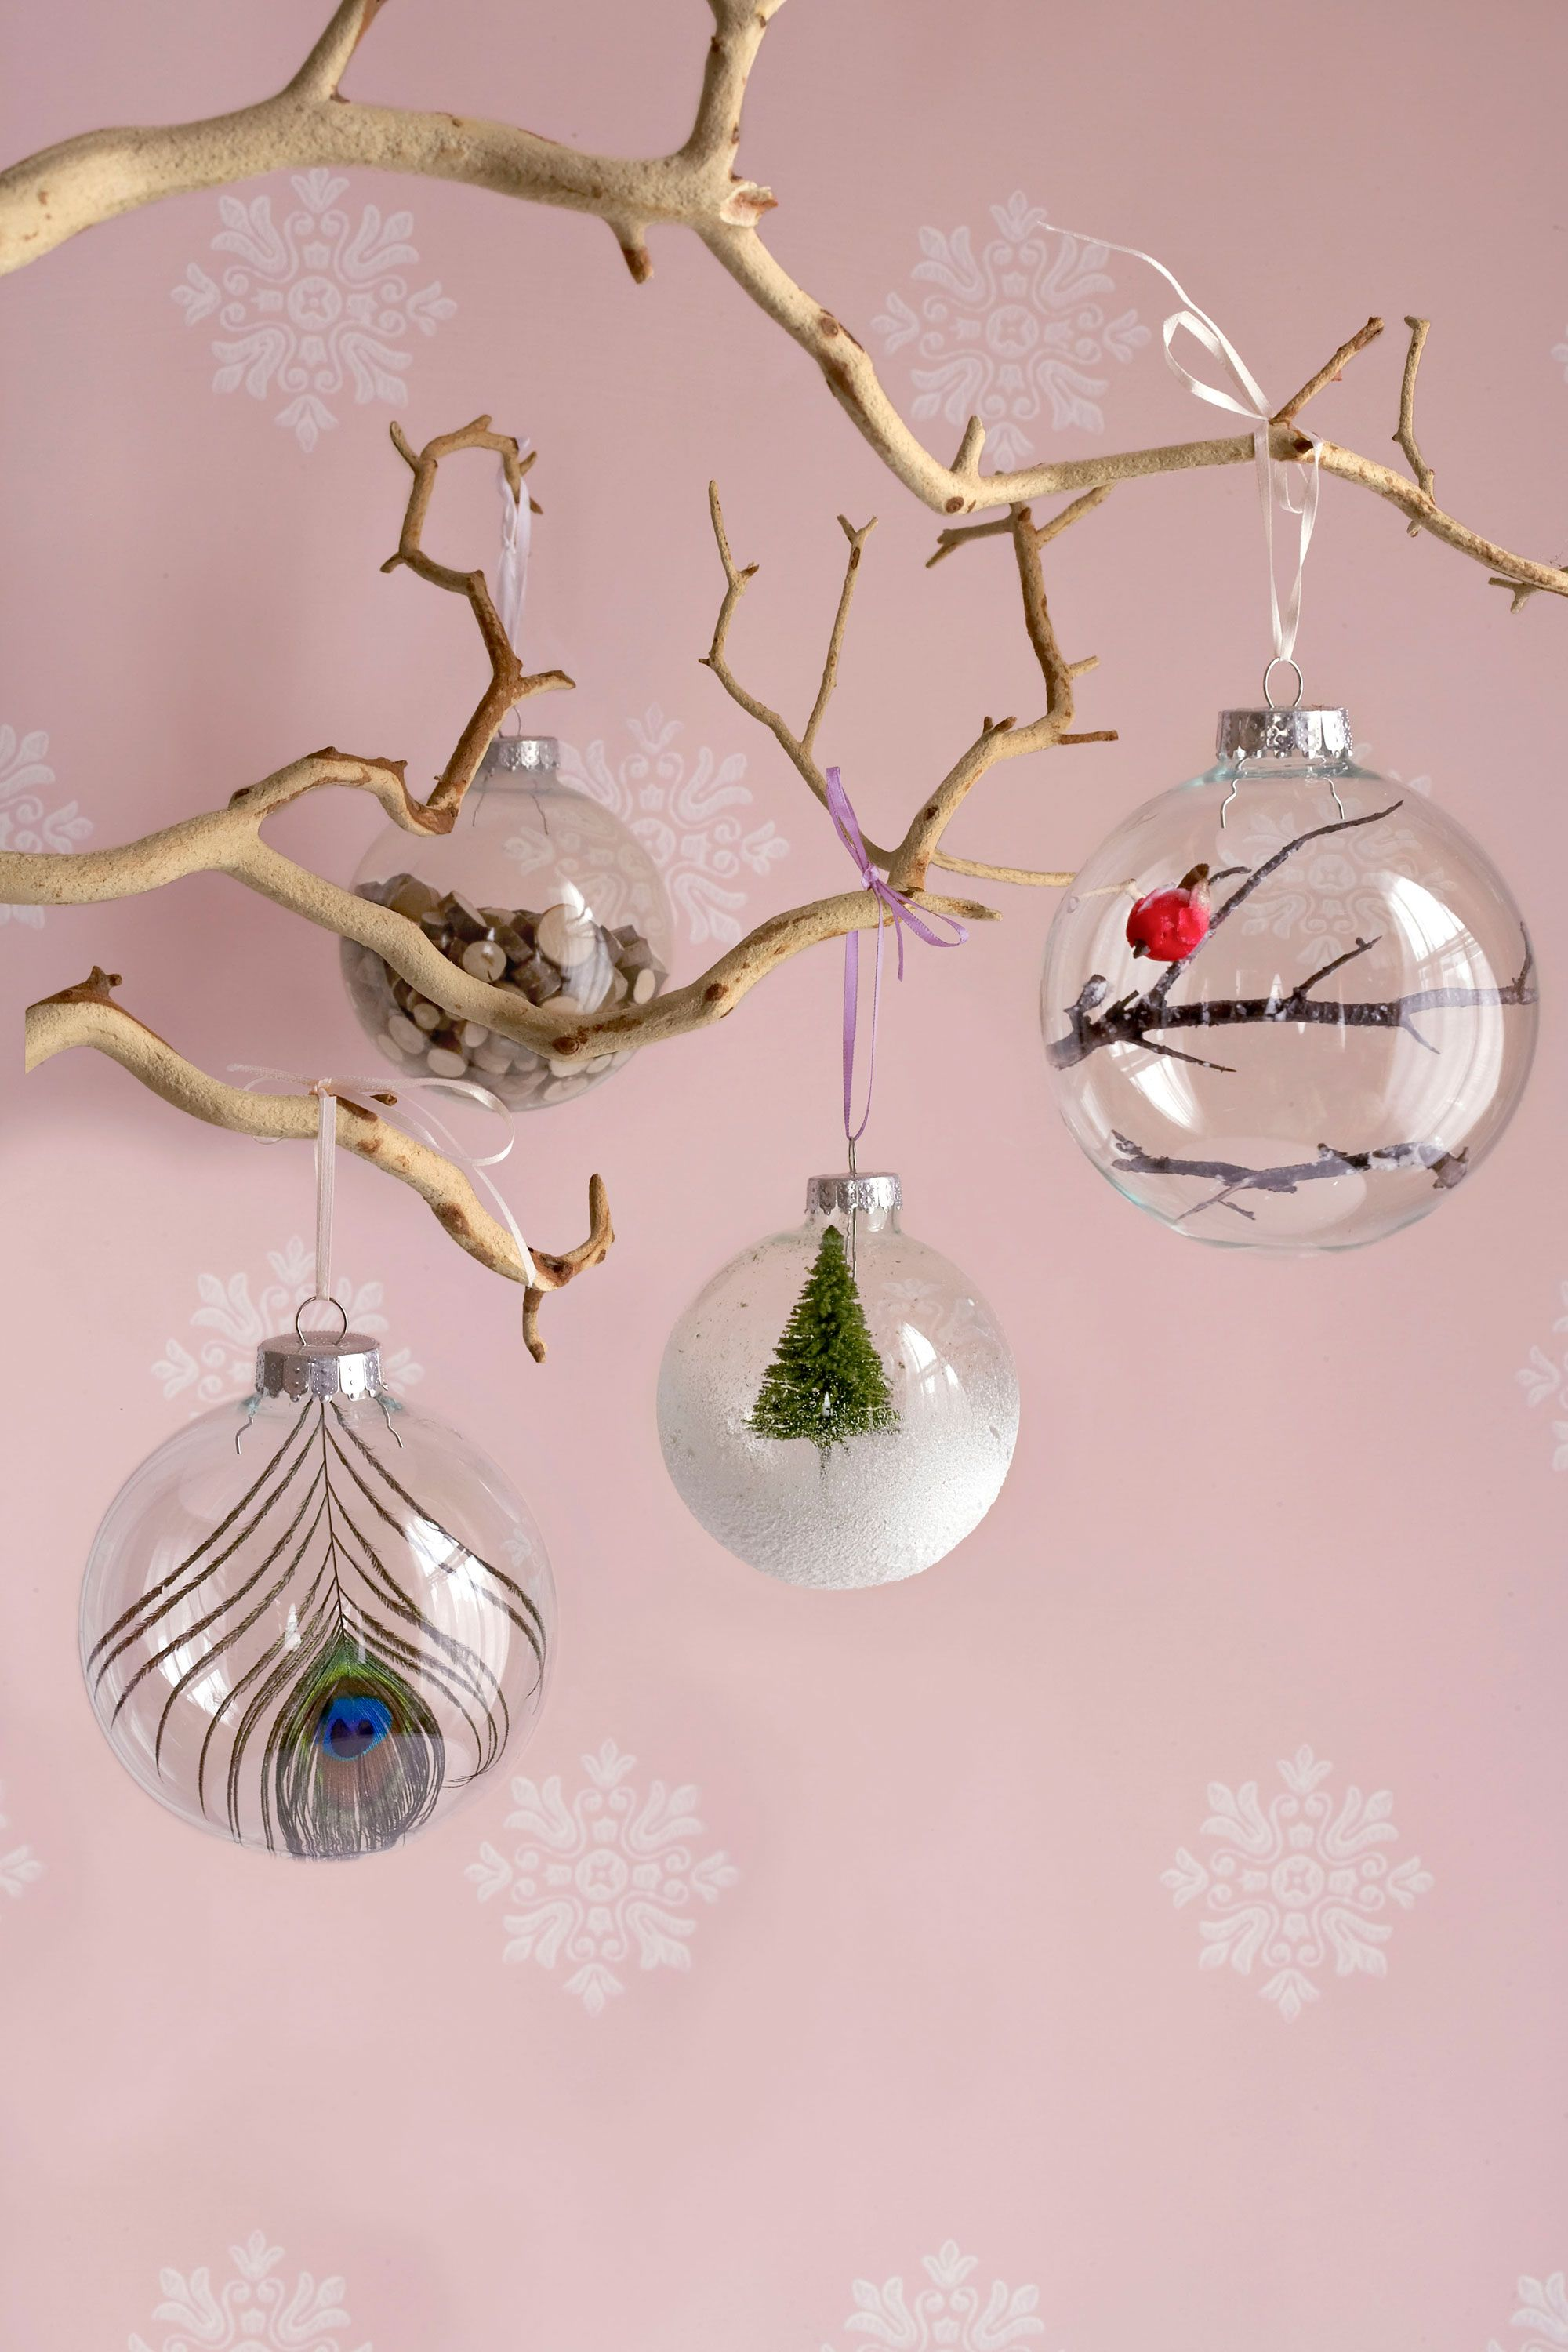 45 diy homemade christmas decorations christmas decor you can make - Christmas Tree Branch Decorations